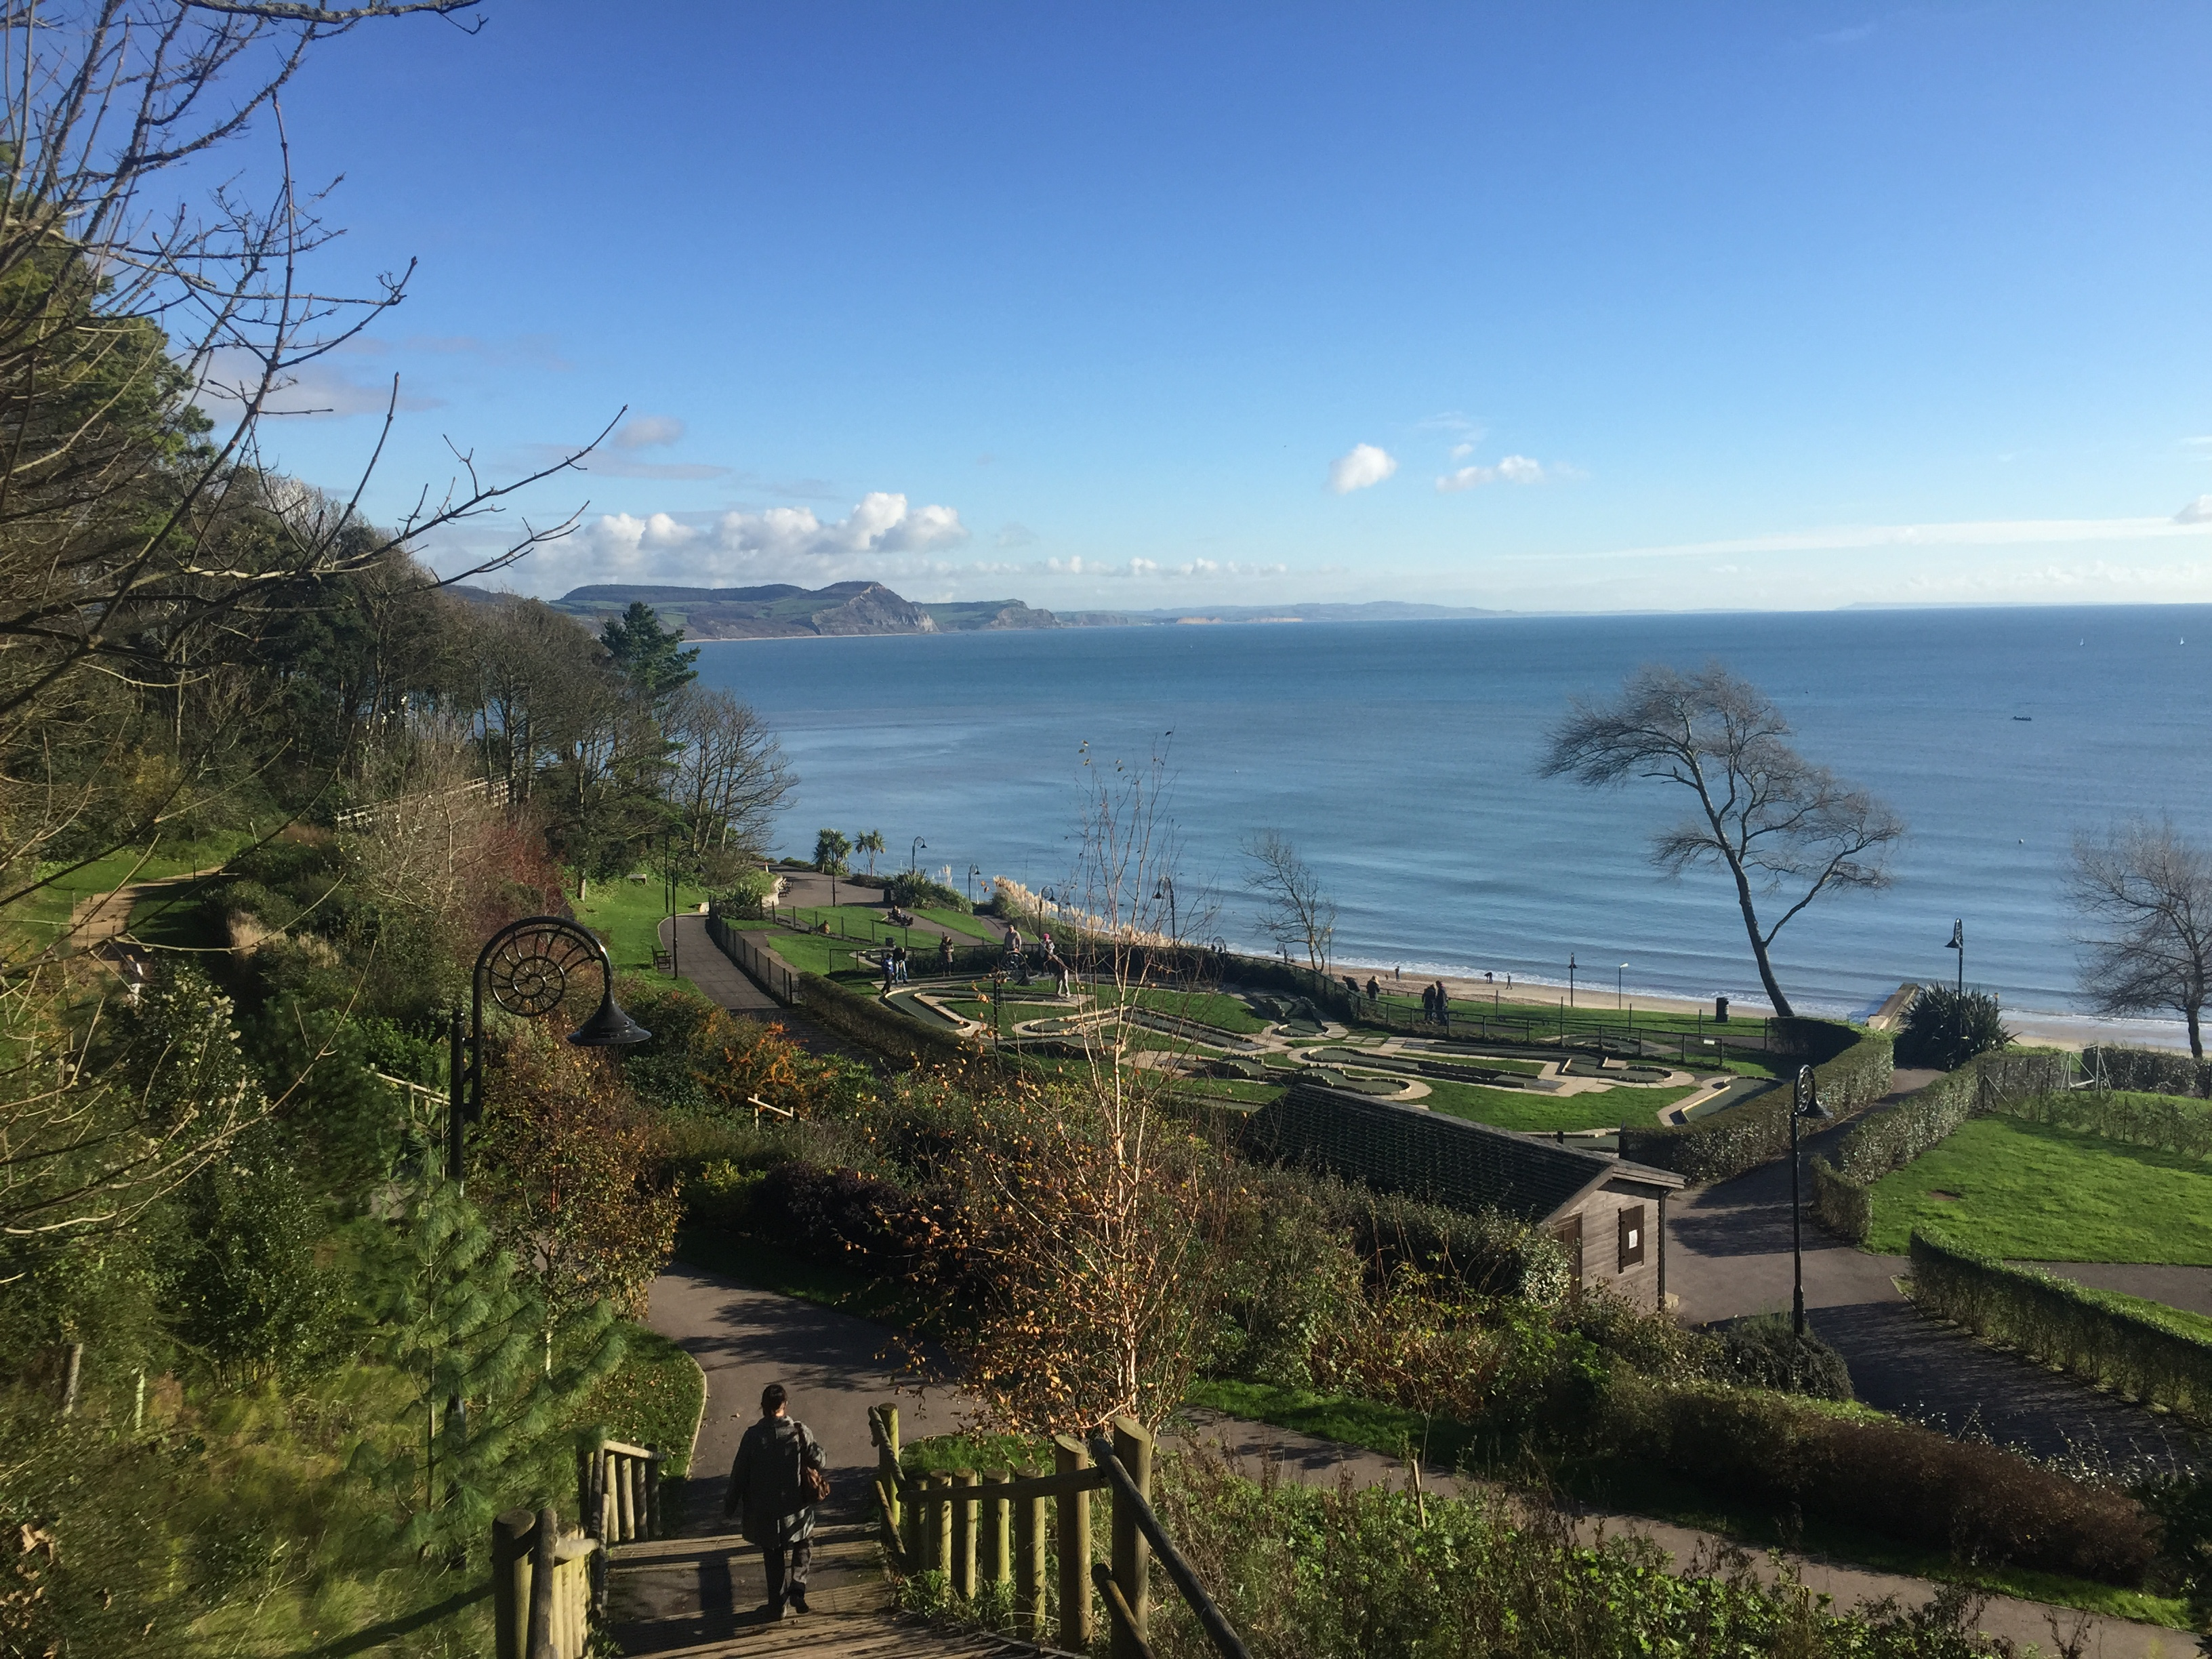 A picture from Lyme Regis - view from the top of the gardens looking towards the sea on a clear and sunny day